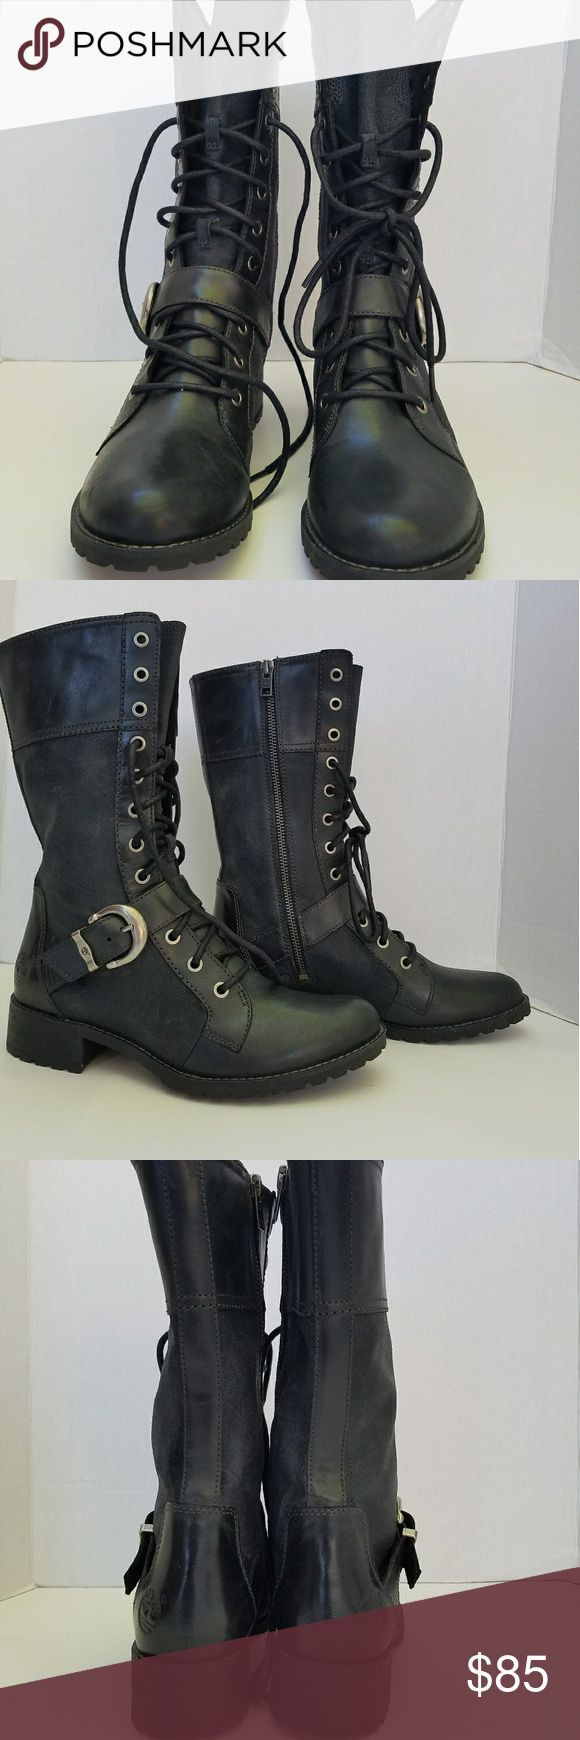 Timberland Women's Earthkeepers THE LOWEST PRICE! Mid-calf, lace-up, side zippered. Size: US 8 Color: Black. Without box. Timberland Shoes Lace Up Boots